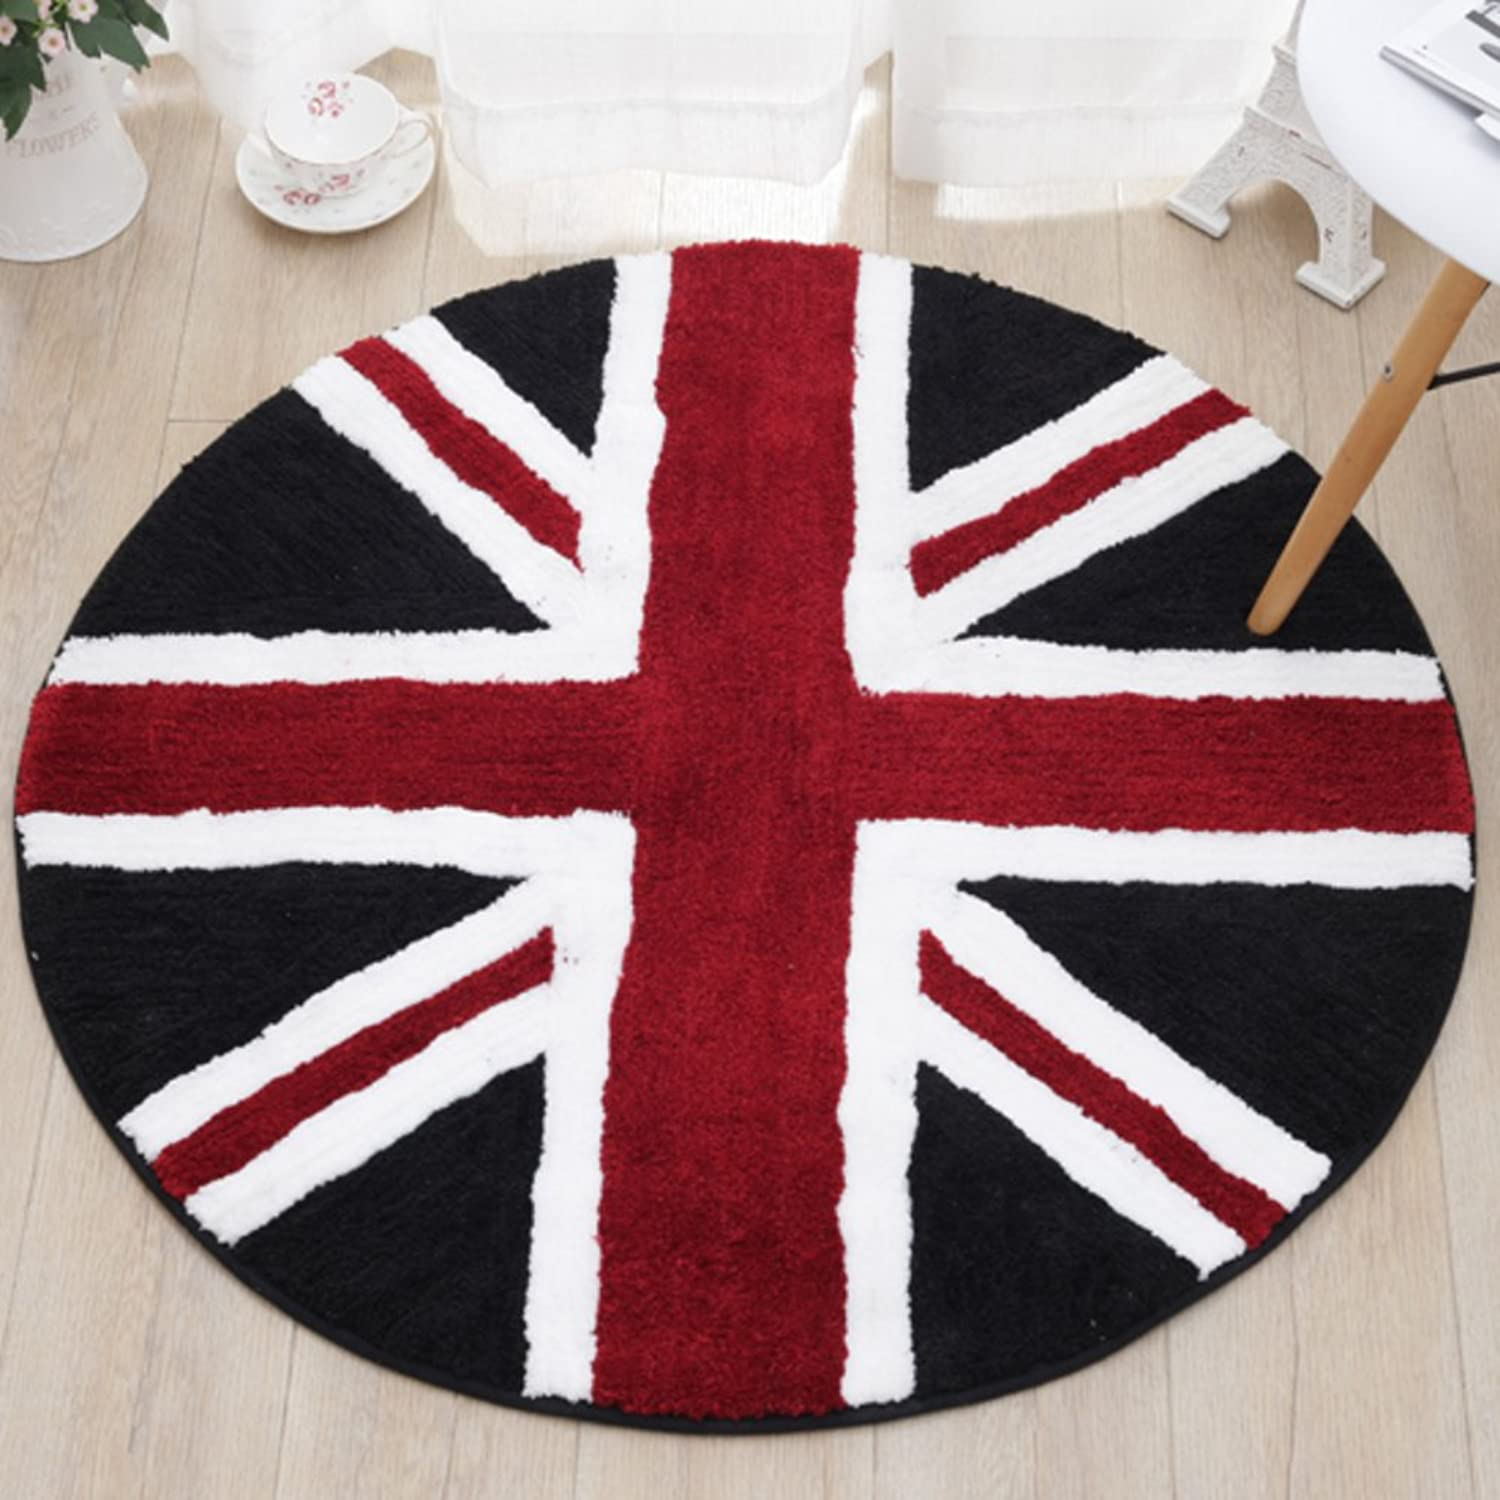 European round floor mat Circle computer turn cushions  bedroom hanging basket cushion Non-slip water-absorption door mat-A 110x110cm(43x43inch)